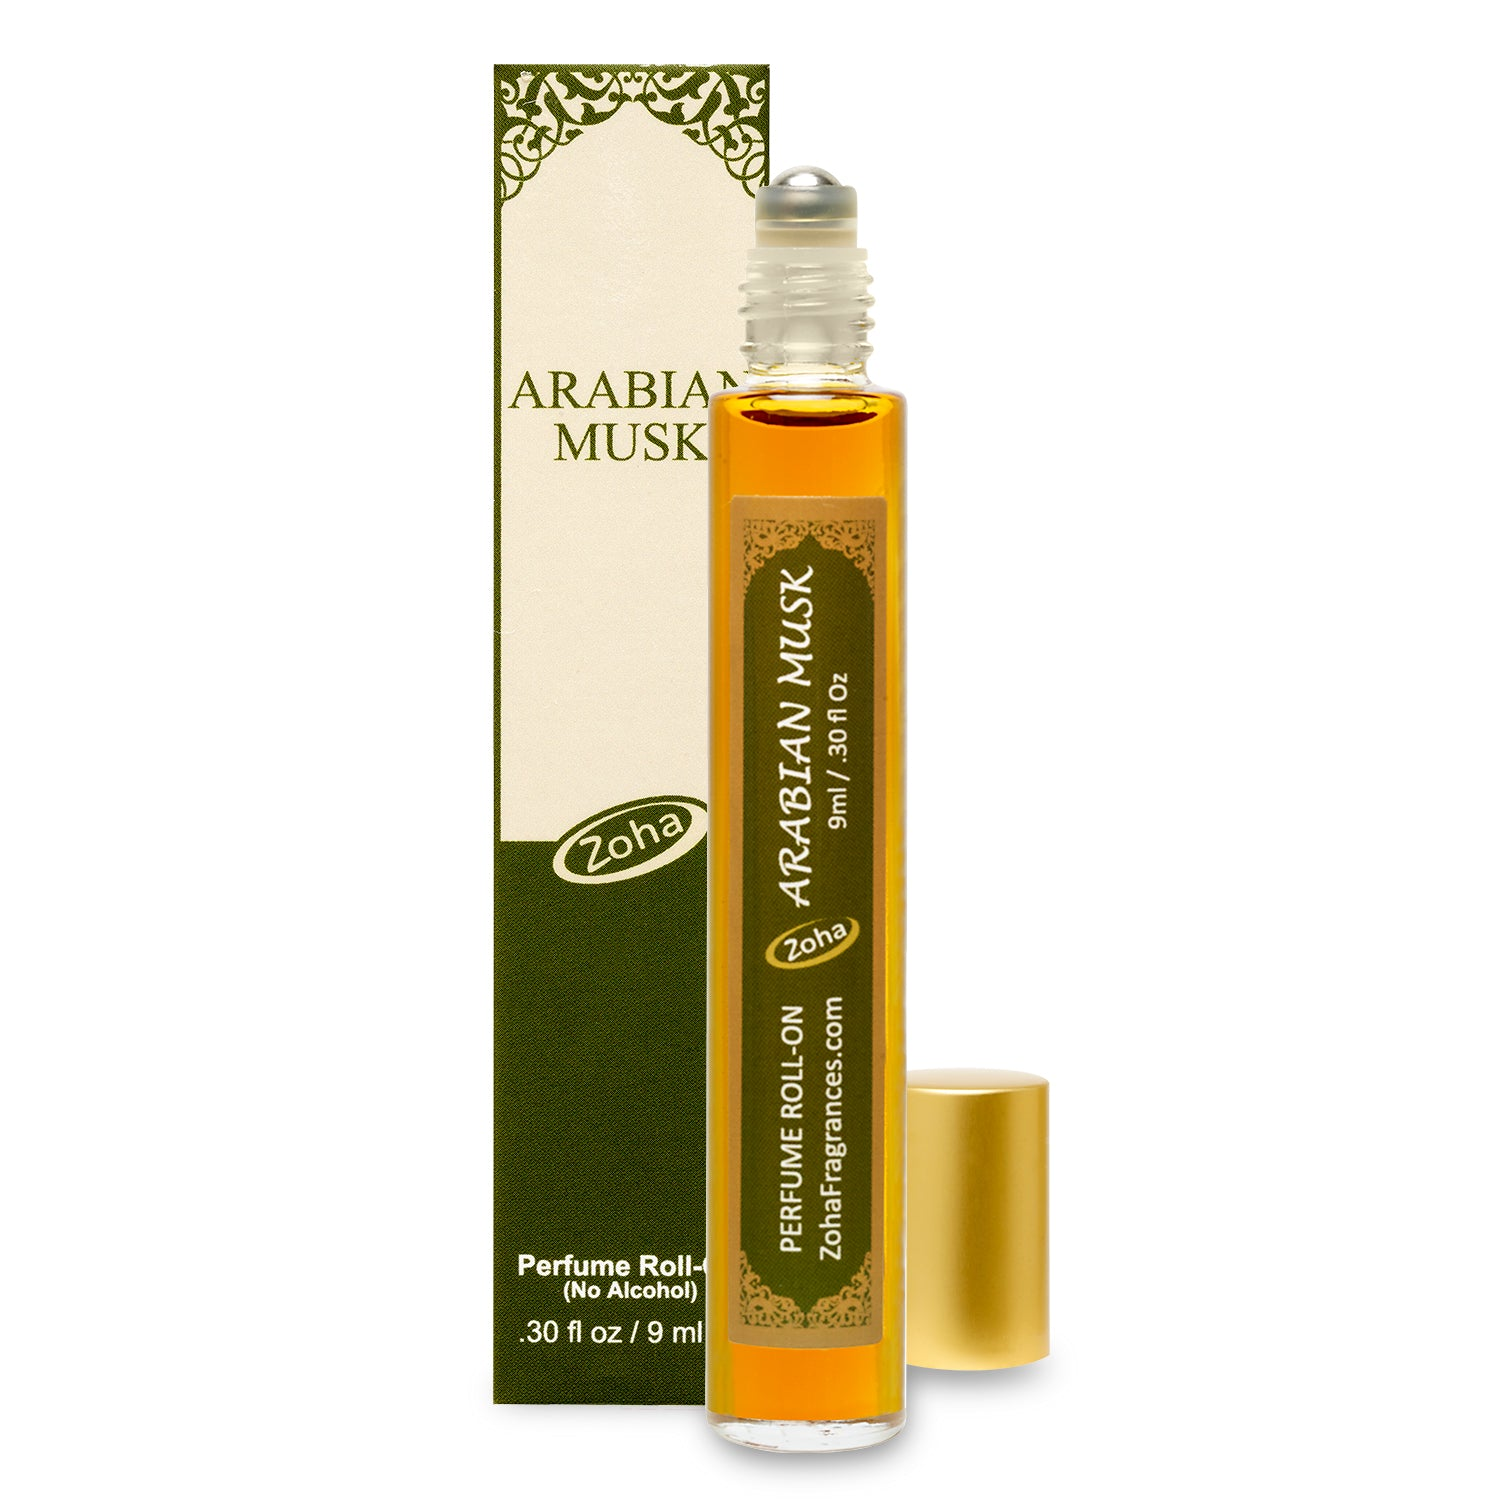 Arabian Musk (No Alcohol) Perfume Oil Roller by Zoha Fragrances